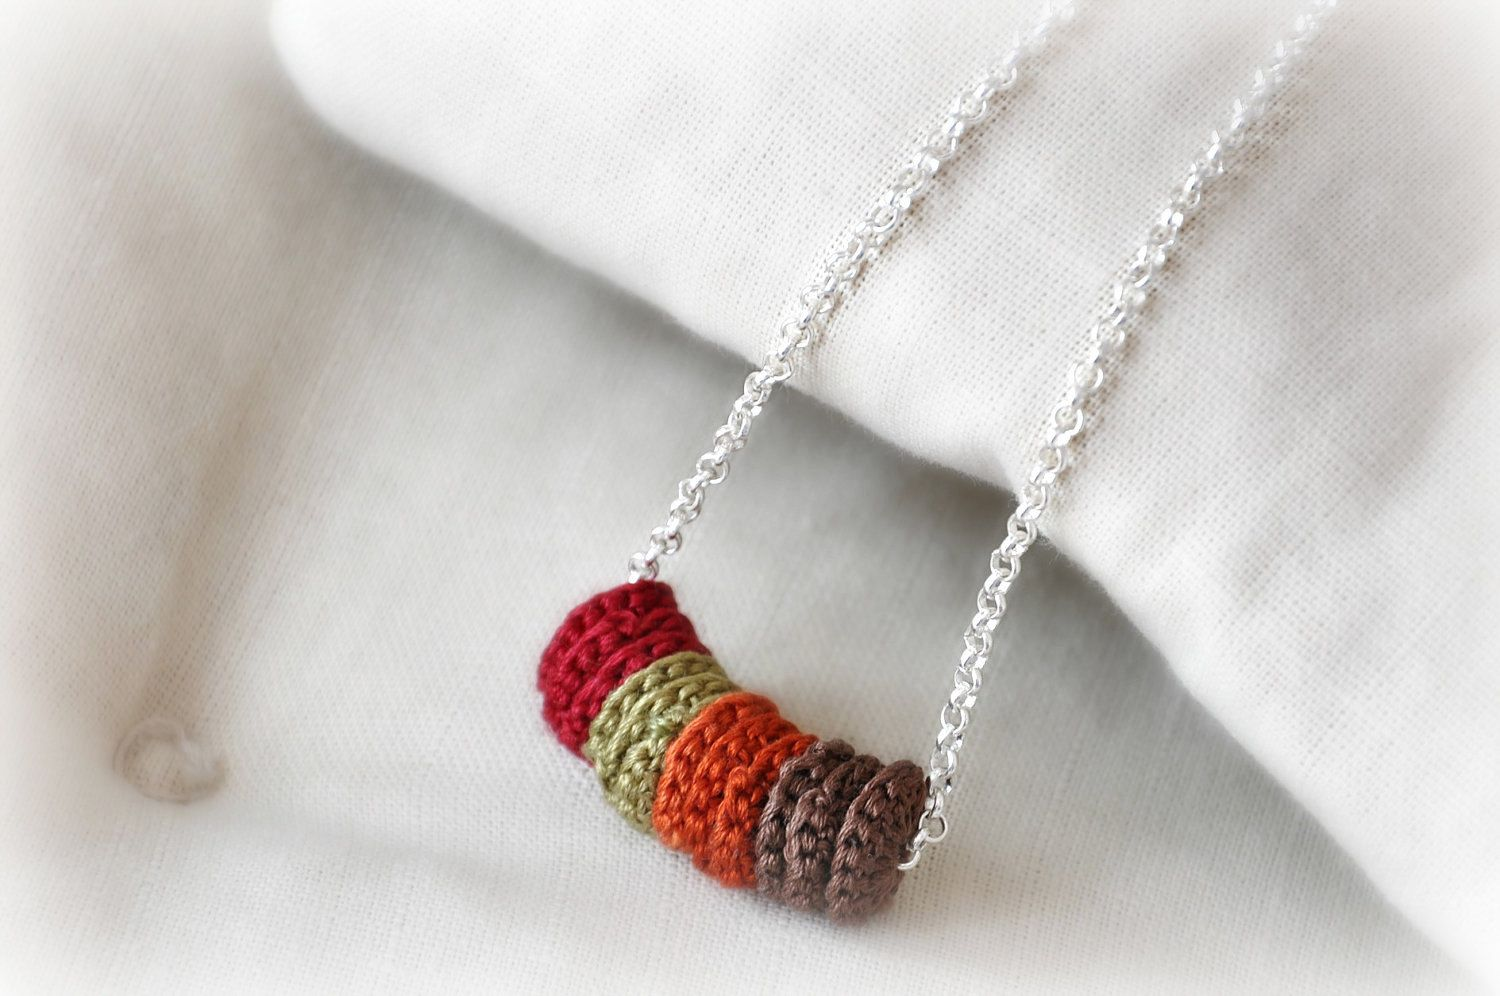 Autumn Leaves Necklace Silver Crochet  Eco Friendly Jewelry  Embroidery Braidsmaid Statement Choker Christmas Gift Winter Fashion. $26.00, via Etsy.